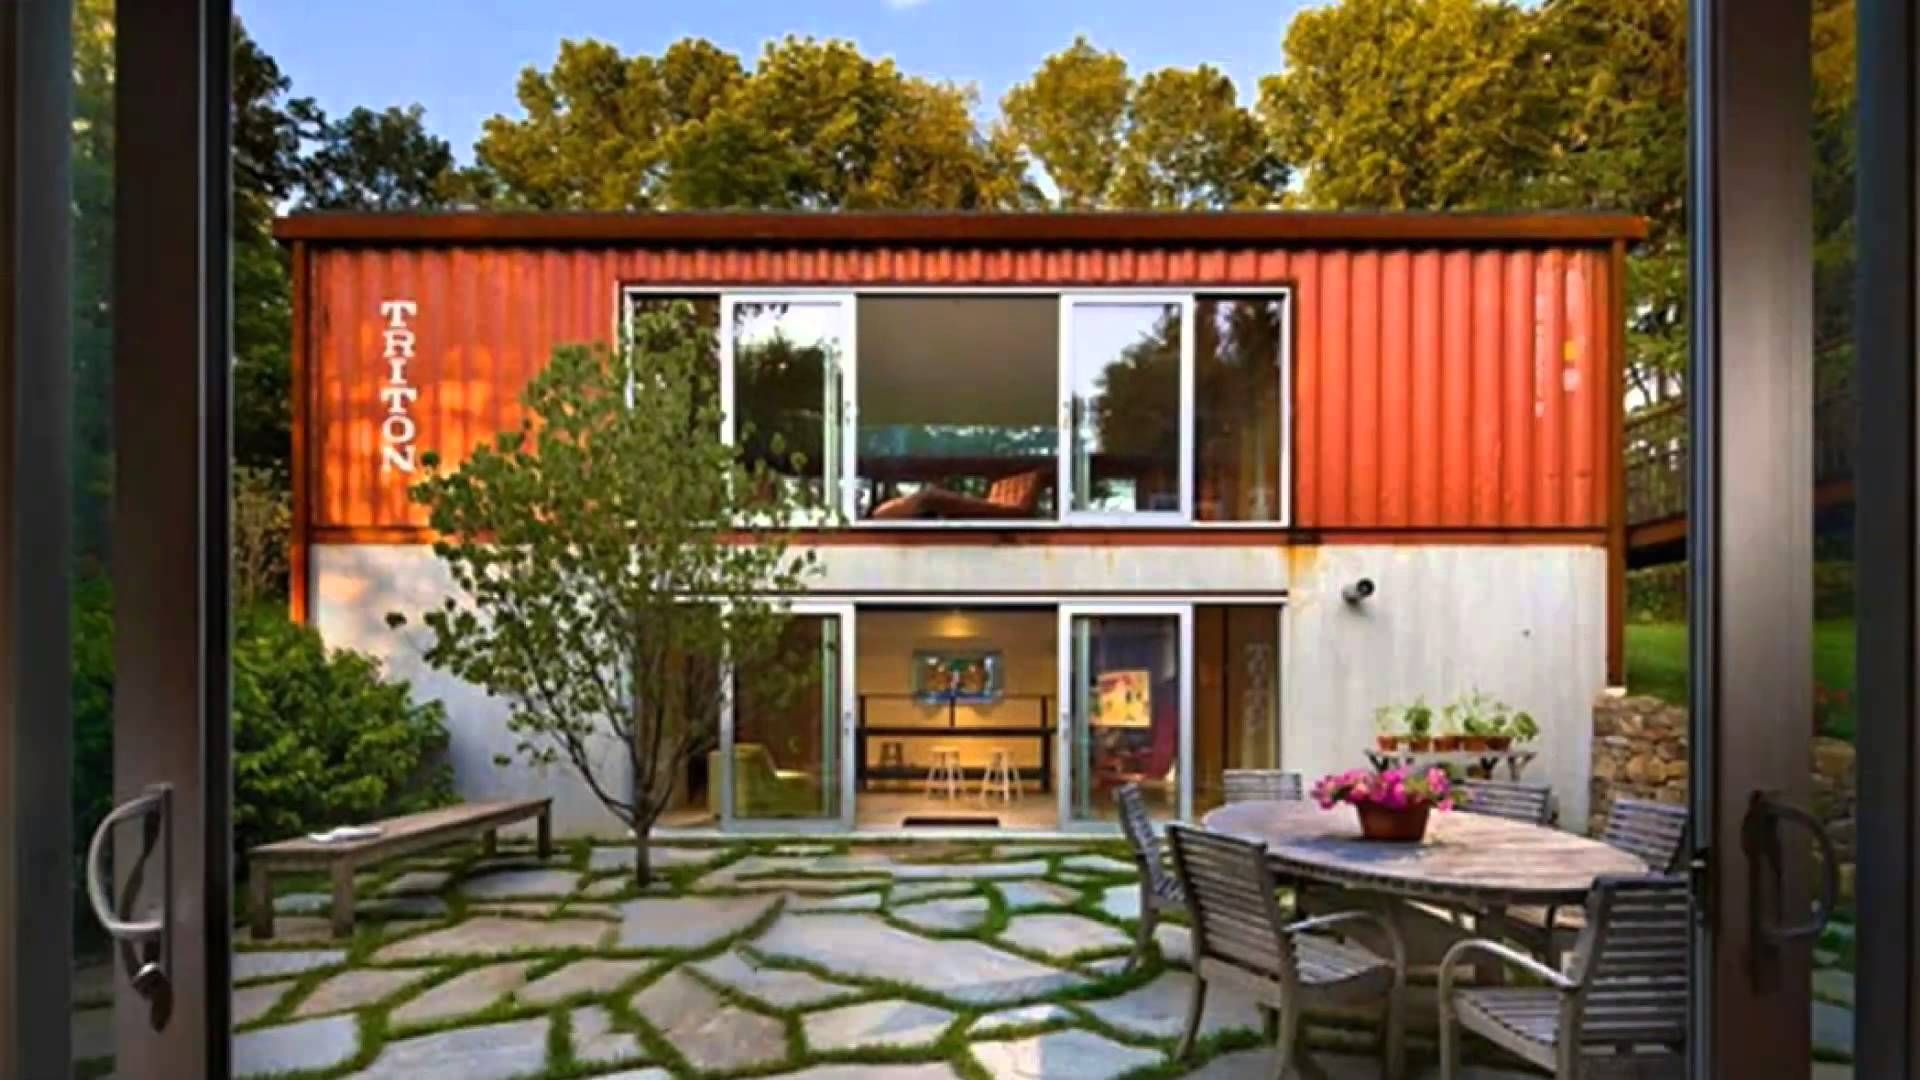 Cargo Container House Plans Shipping Container House Plans With Courtyard Inside Container